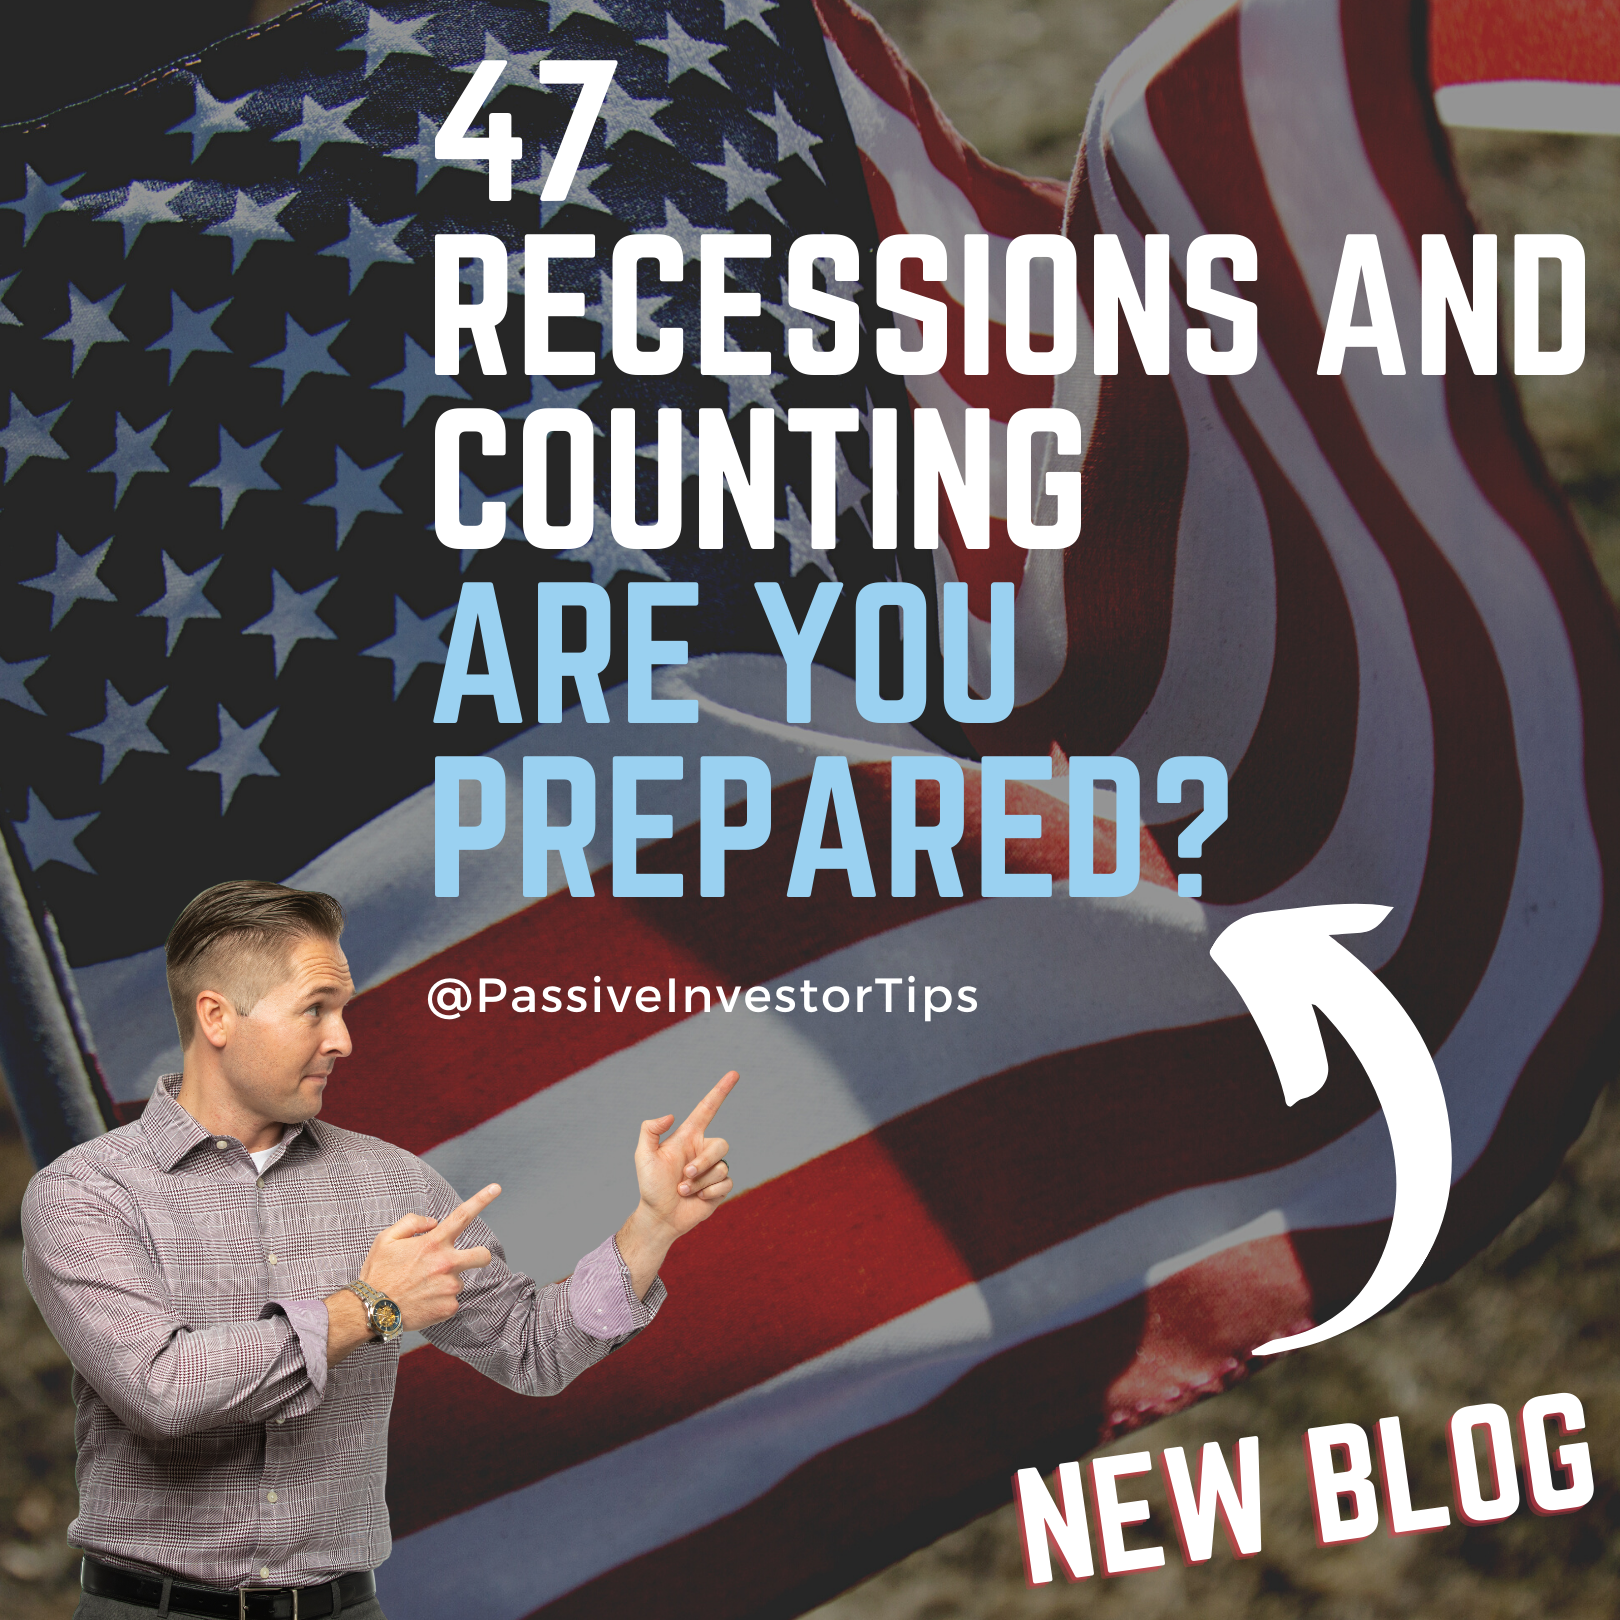 47 Recessions and Counting - Are You Prepared?